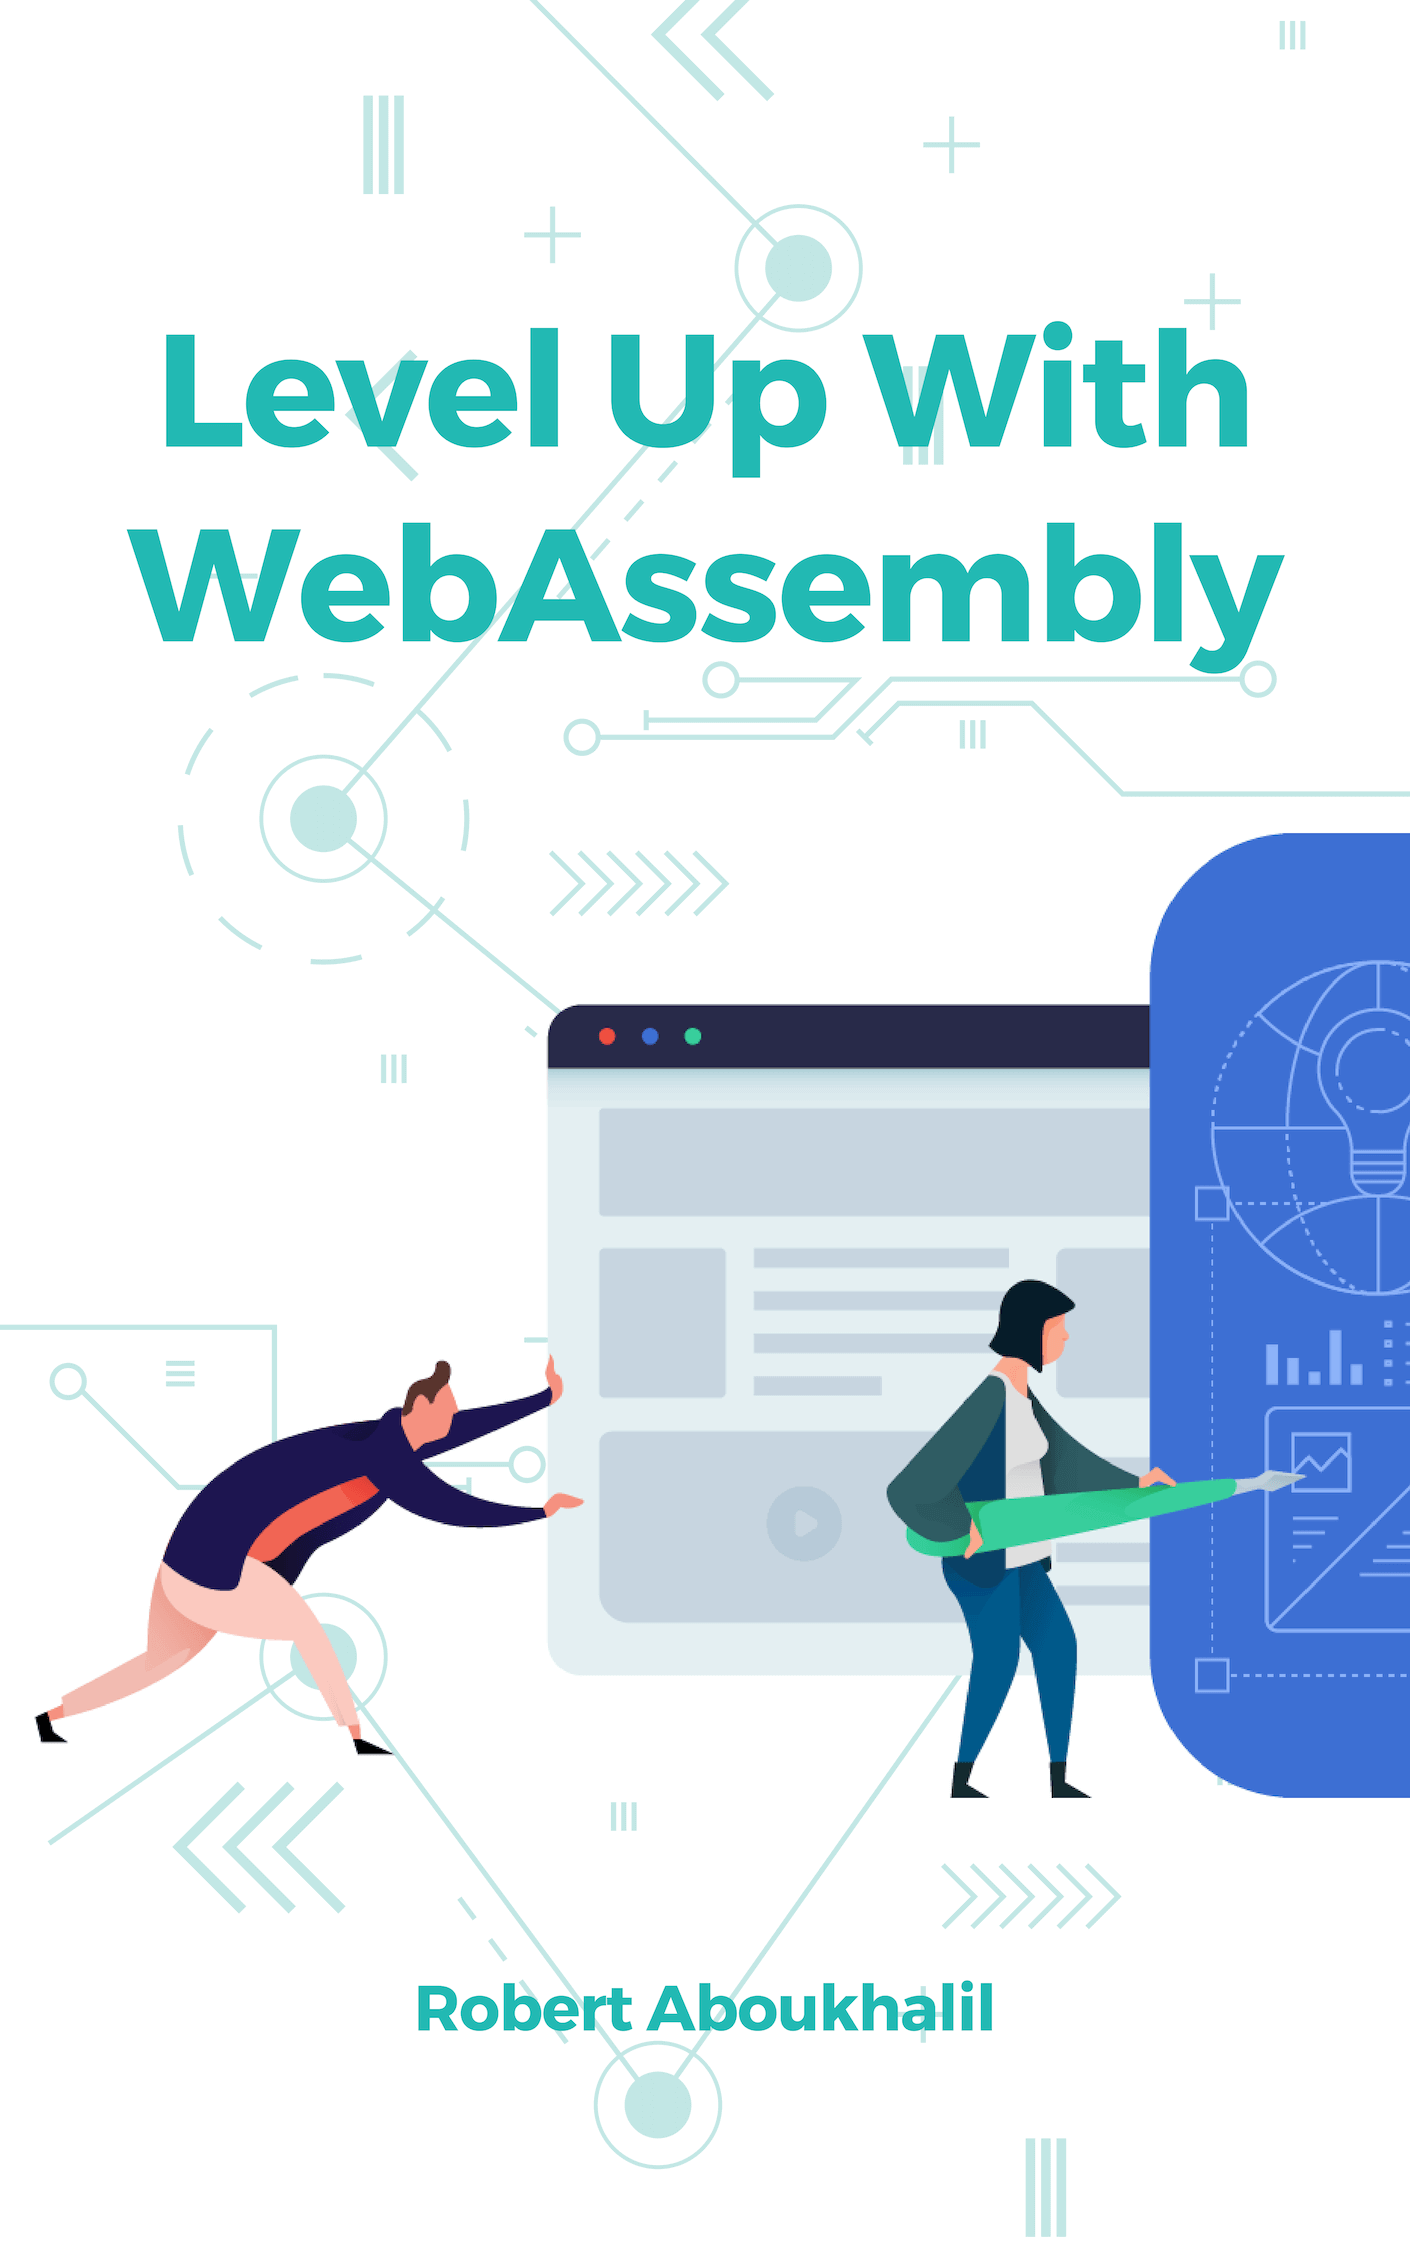 Level up with WebAssembly book cover